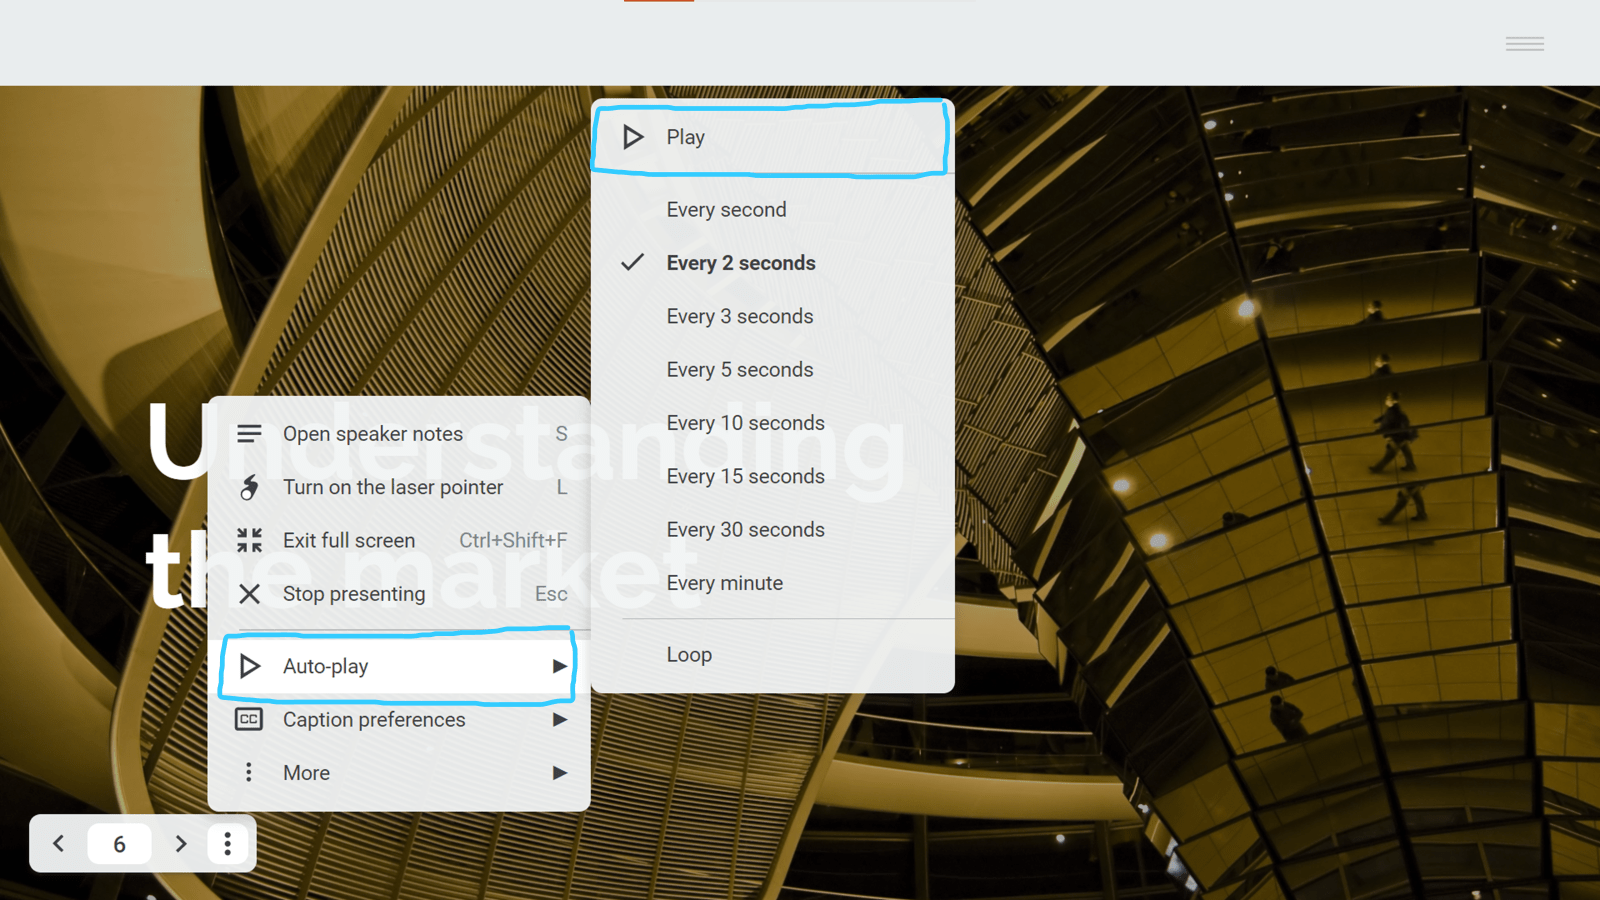 Screenshot of the present mode toolbar options with Autoplay options selected